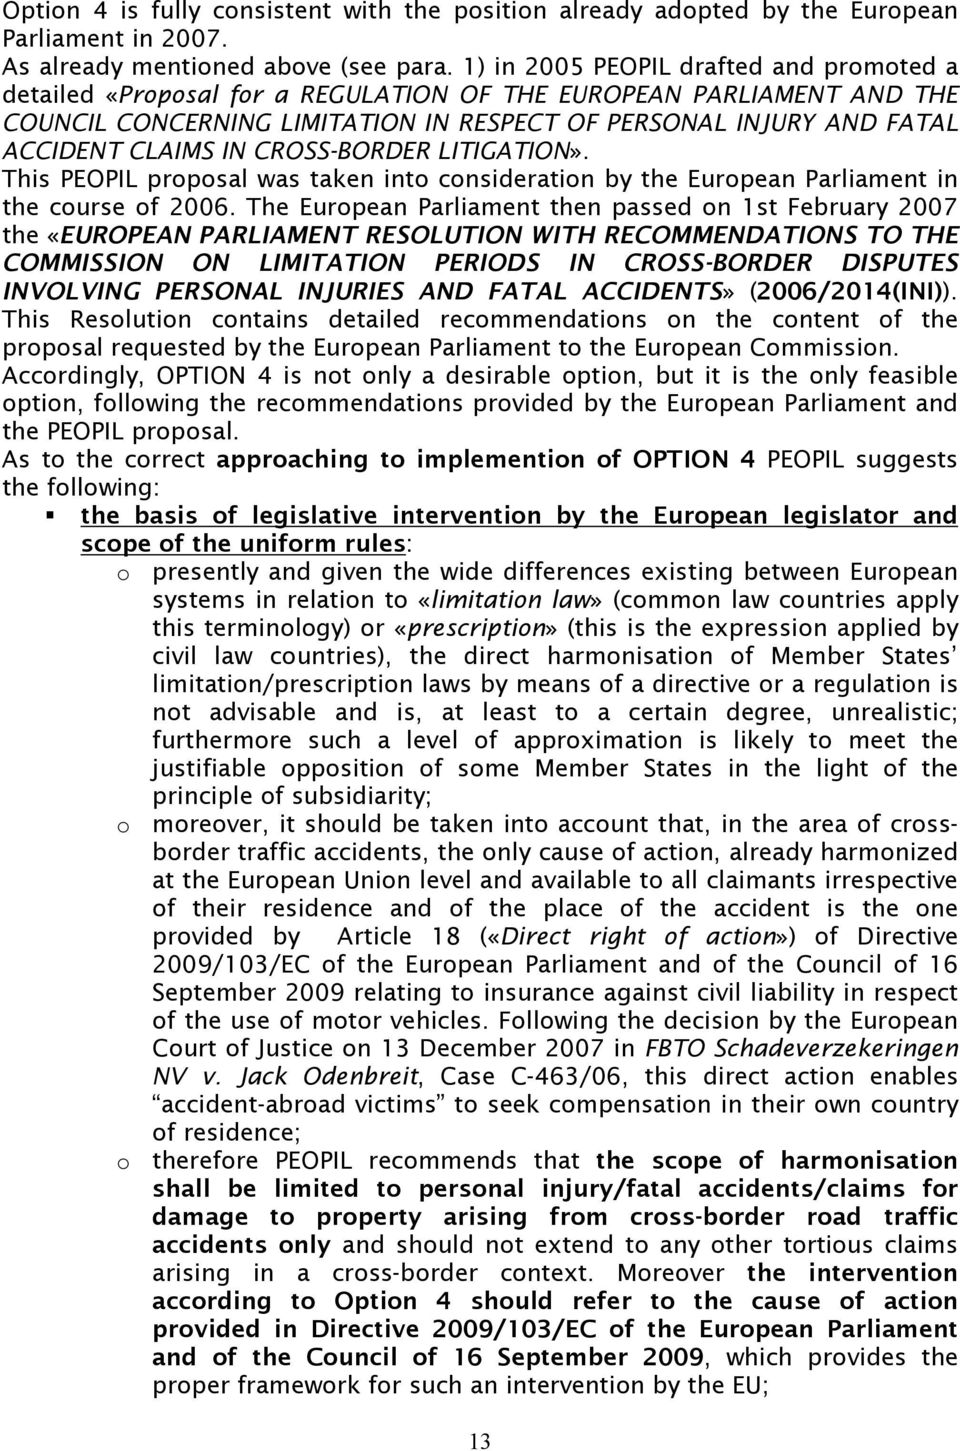 IN CROSS-BORDER LITIGATION». This PEOPIL proposal was taken into consideration by the European Parliament in the course of 2006.